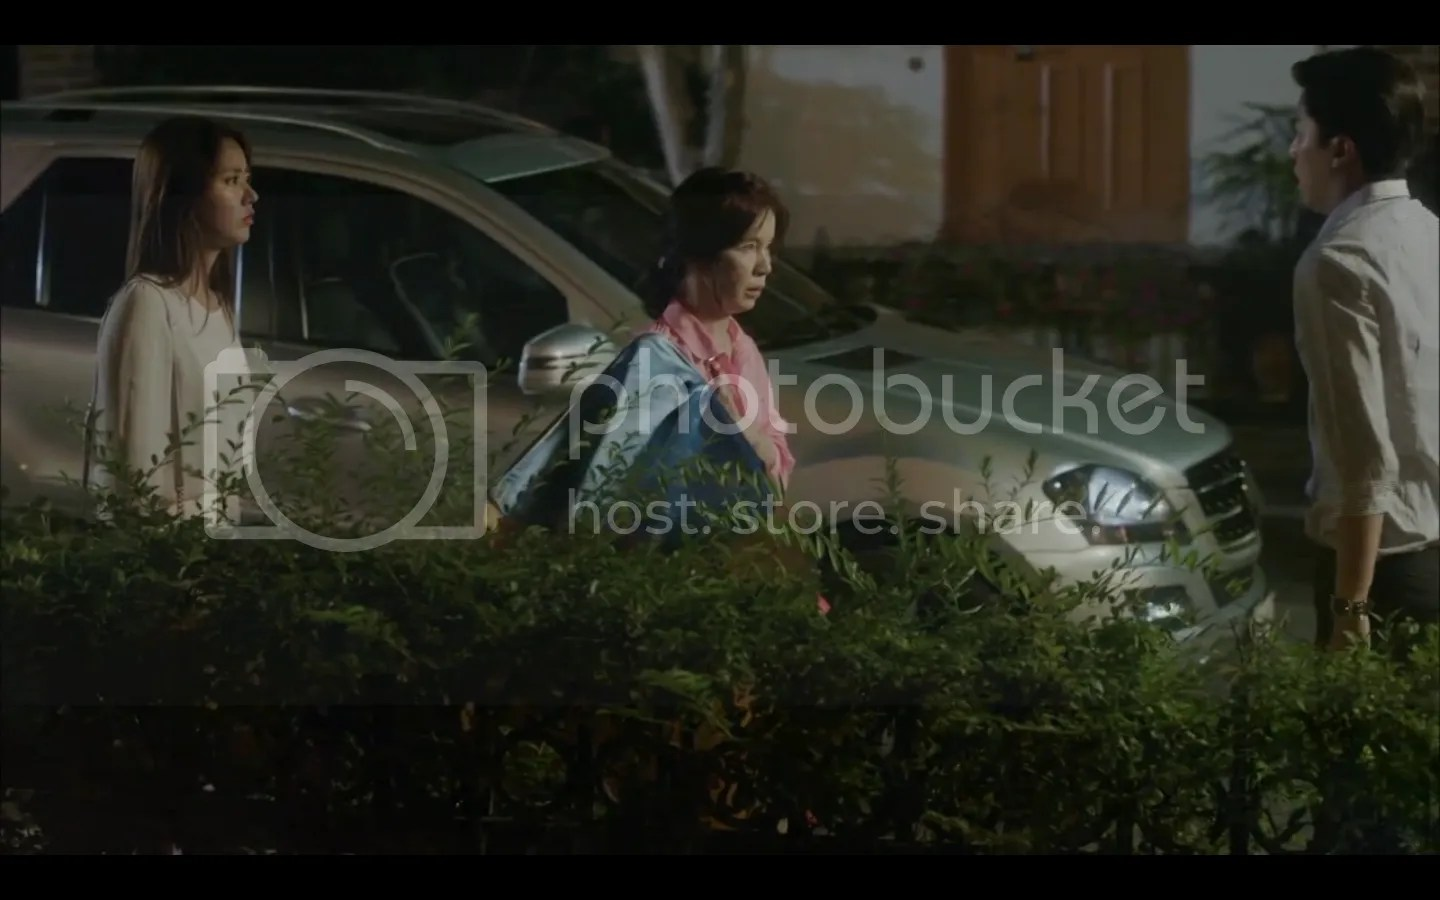 marriage not dating 12 recap Marriage not dating recap ep 12 totally free dating sites sydney ah jung says black girl dating white tumblr of course it was, did you think otherwise marriage not dating recap ep 12.